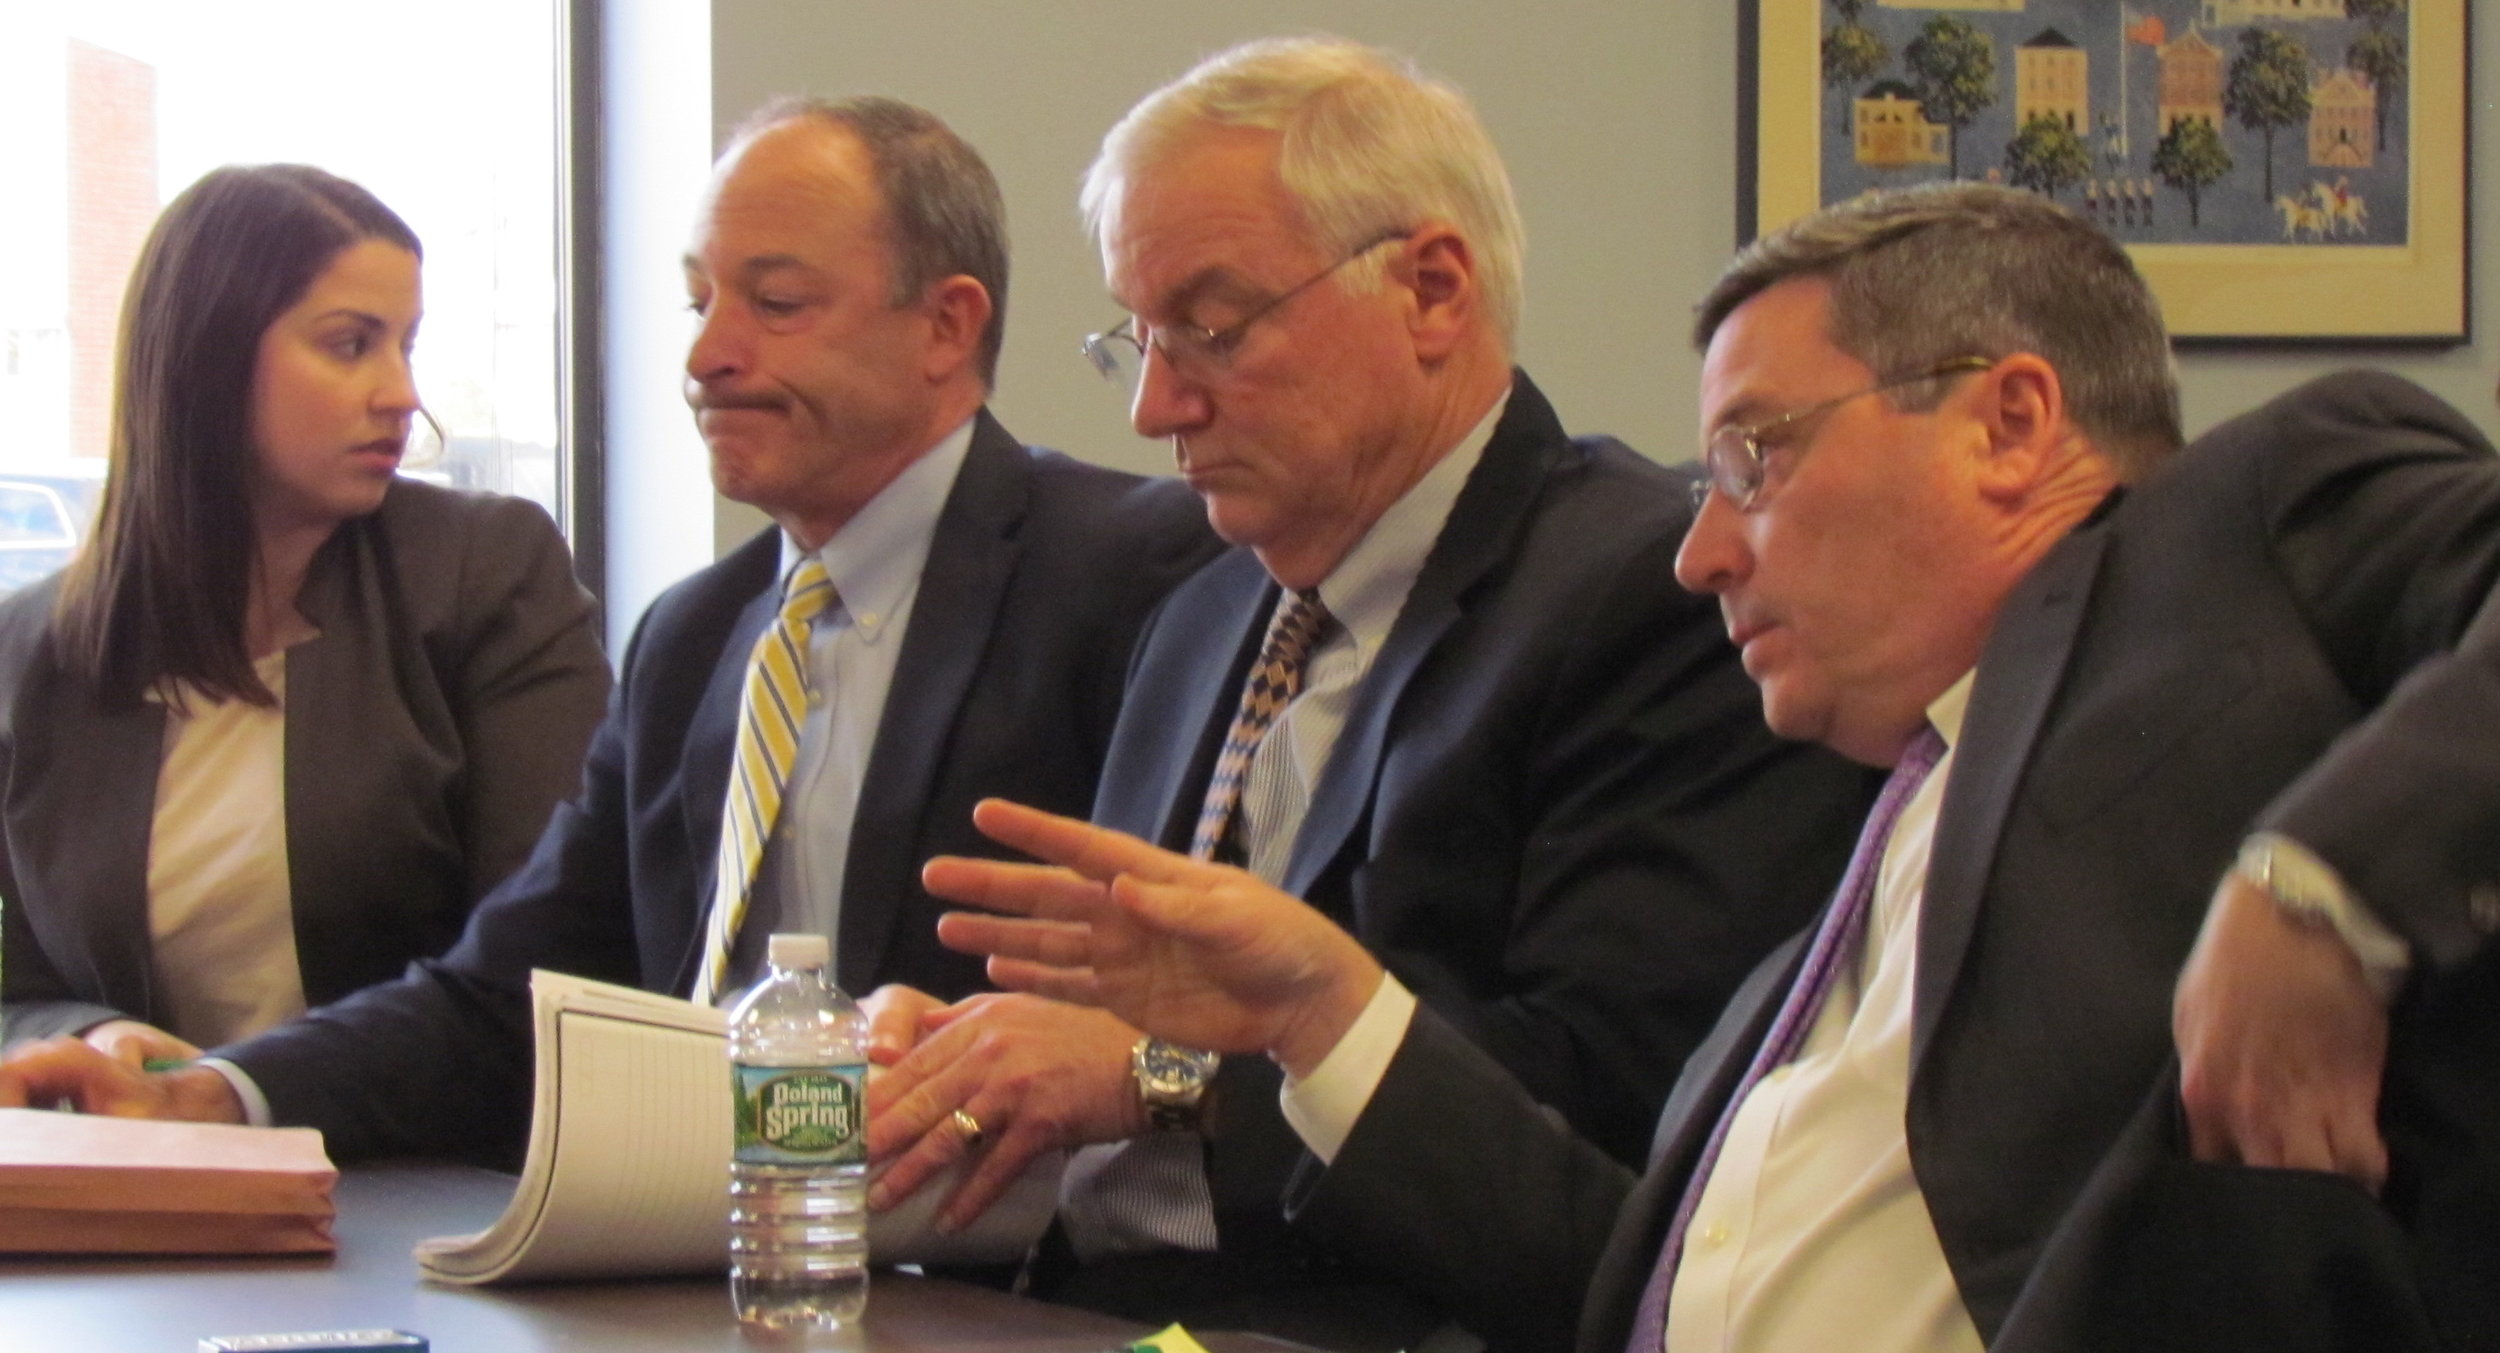 The Invenergy legal team at an Energy Facility Siting Board hearing. (Tim Faulkner/ecoRI News)